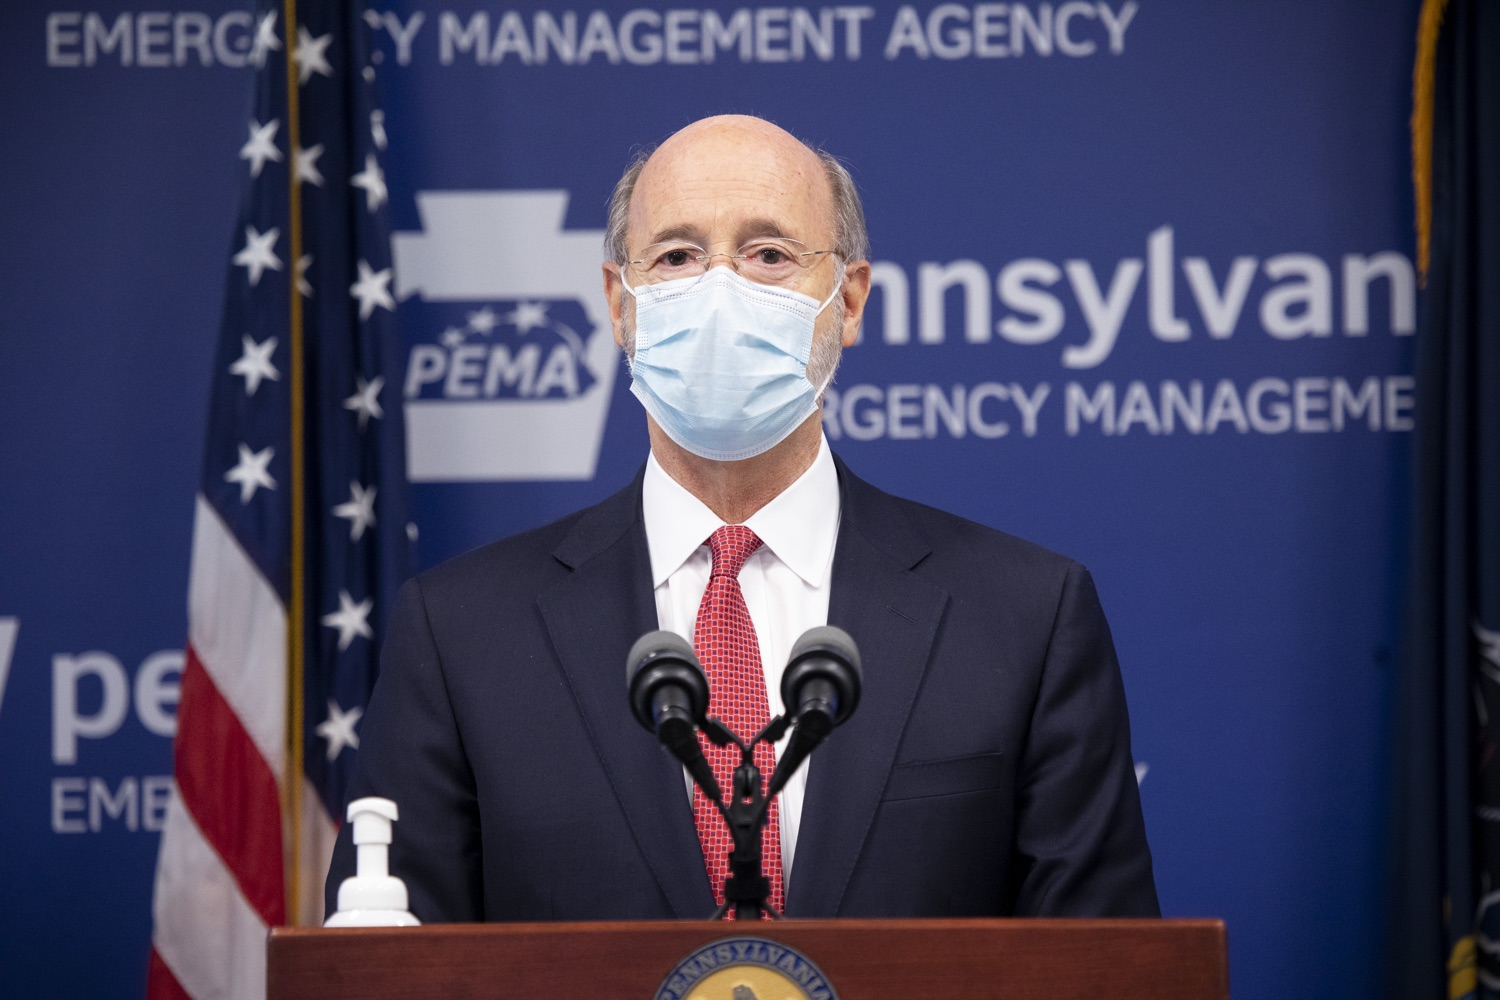 "<a href=""https://filesource.wostreaming.net/commonwealthofpa/photo/18405_gov_covidUpdate_dz_009.jpg"" target=""_blank"">⇣ Download Photo<br></a>Pennsylvania Governor Tom Wolf answers questions from the press.  With new modeling projecting 22,000 new COVID-19 cases per day in Pennsylvania in December, Governor Tom Wolf and Secretary of Health Dr. Rachel Levine today announced new targeted mitigation measures to help stop the spread during this critical time. These include a robust enforcement plan targeted at chronic violators along with an effort to ensure schools are safe and in compliance with COVID safety plans. The administration is also encouraging Pennsylvanians to limit unnecessary travel and stay at home.  Harrisburg, Pa. November 23, 2020"